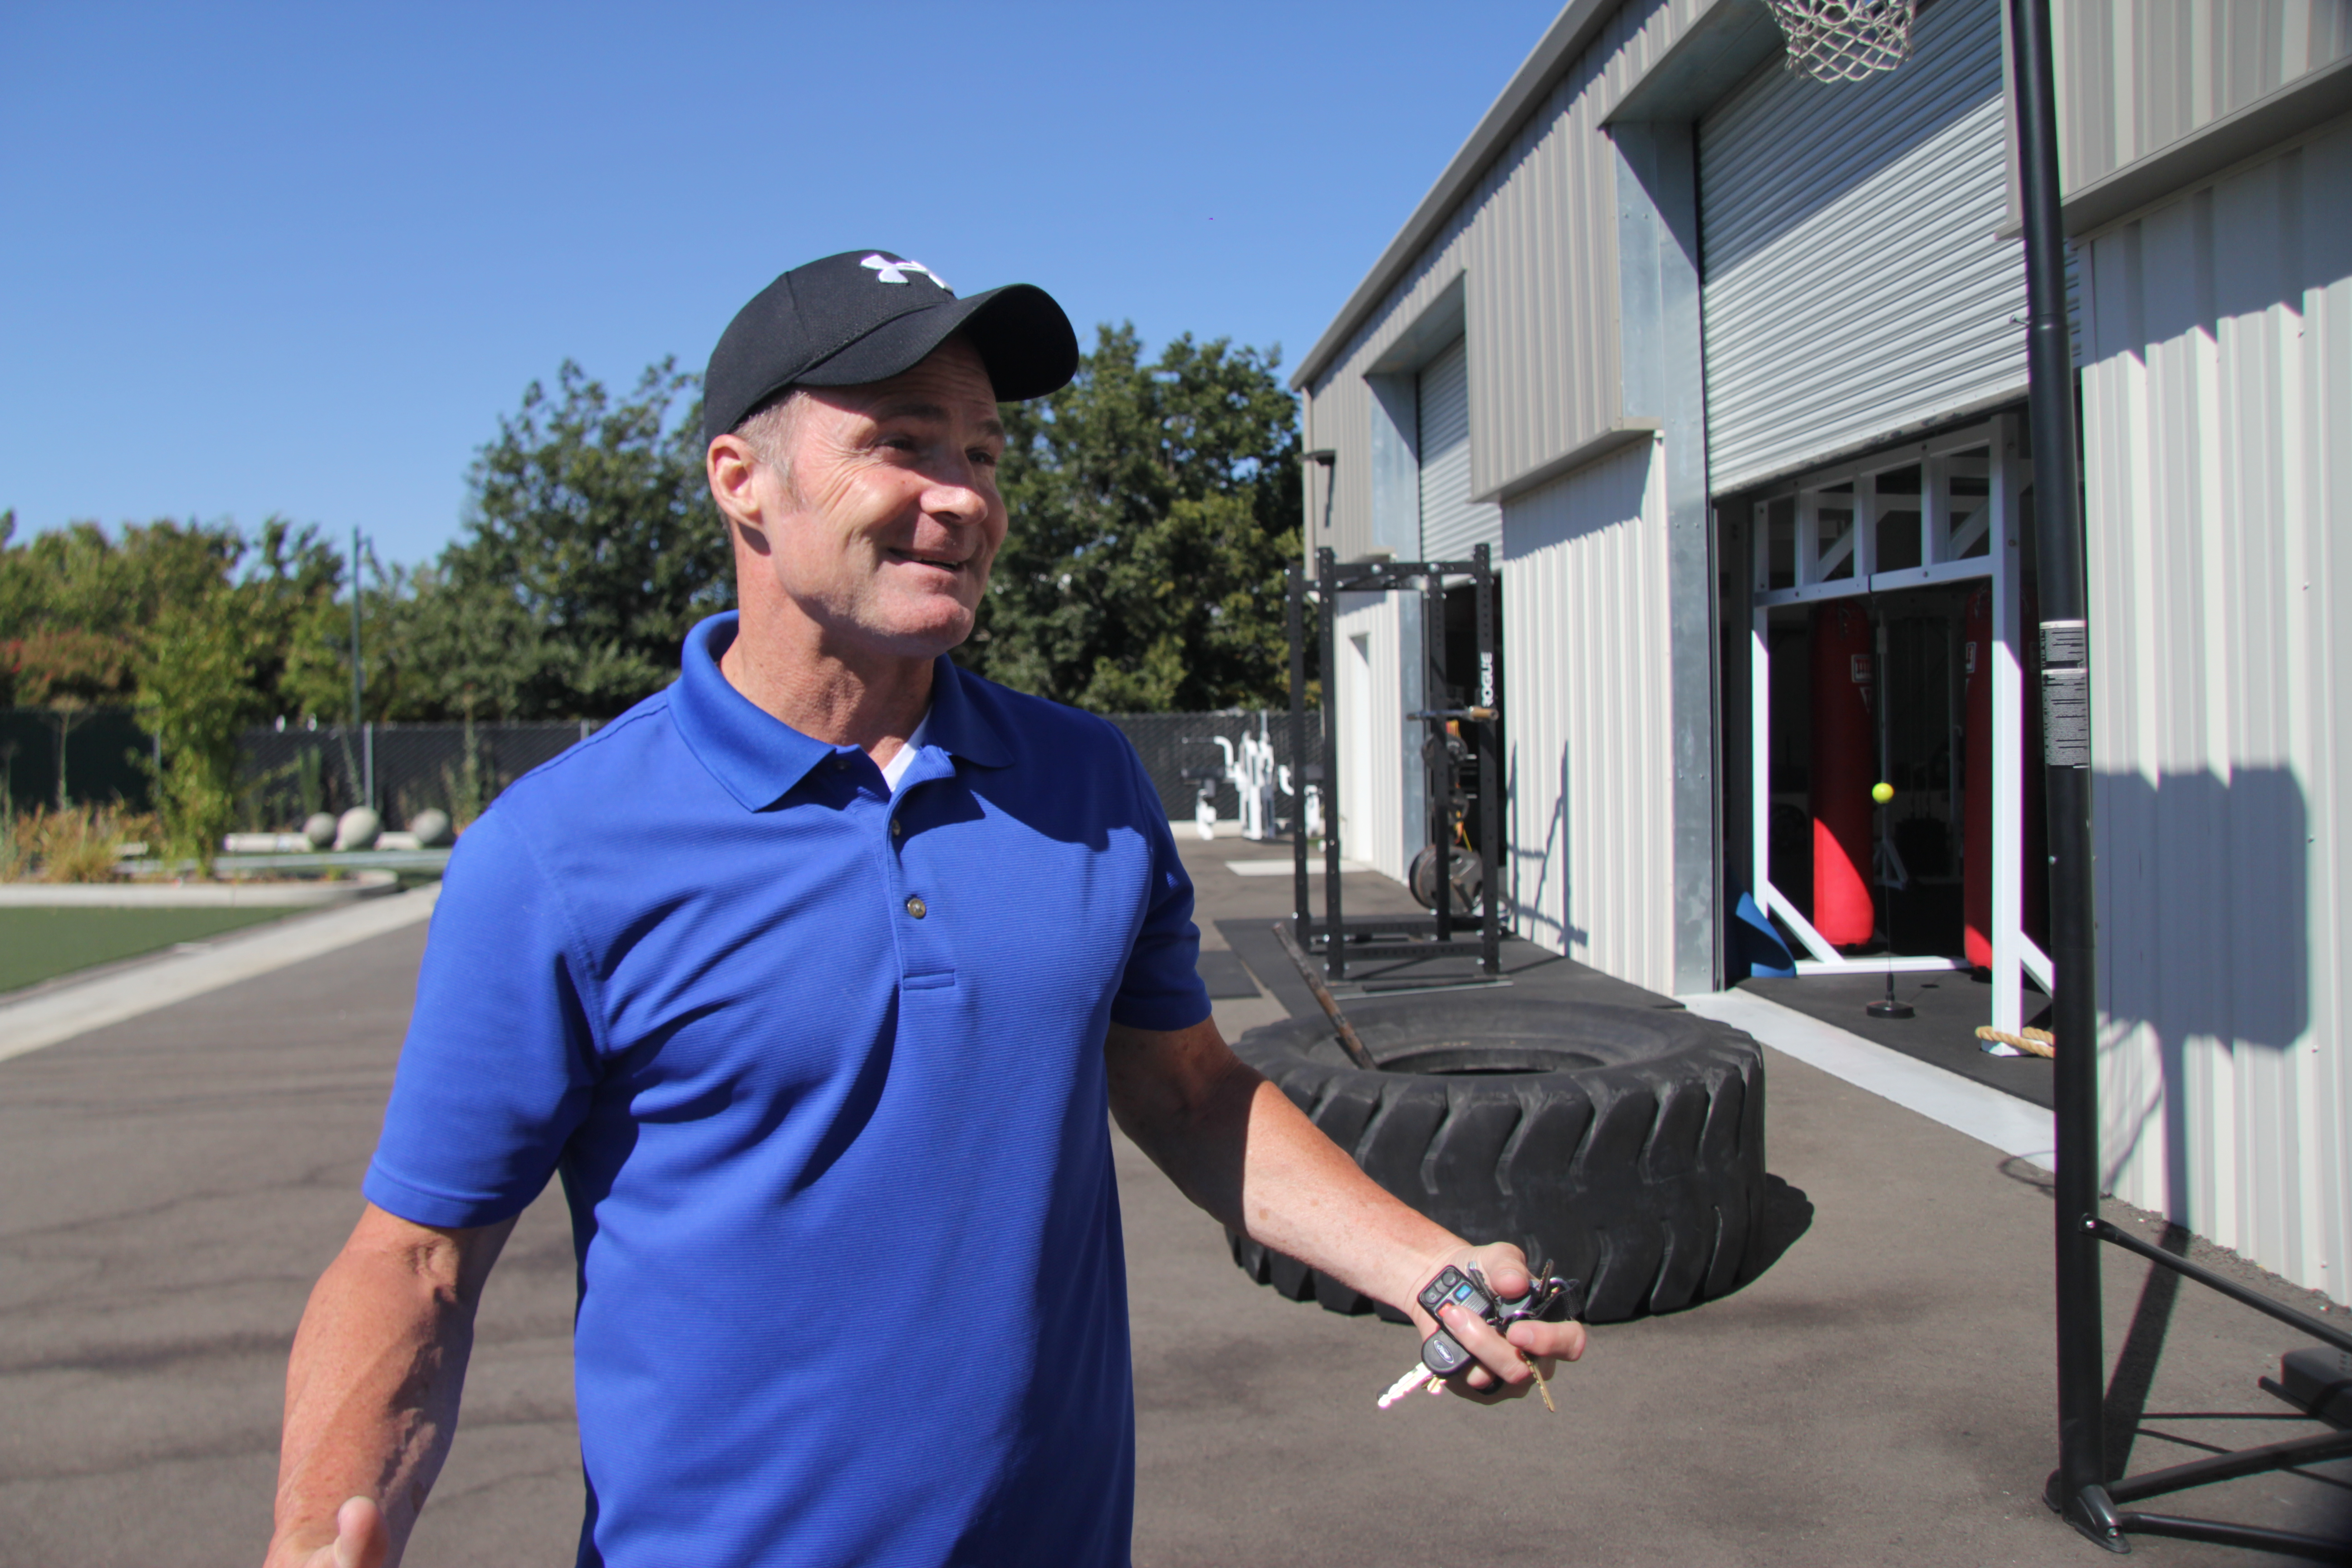 Doc's Gym owner Joe Martin talks to the Get Fit Clovis team about his gym.